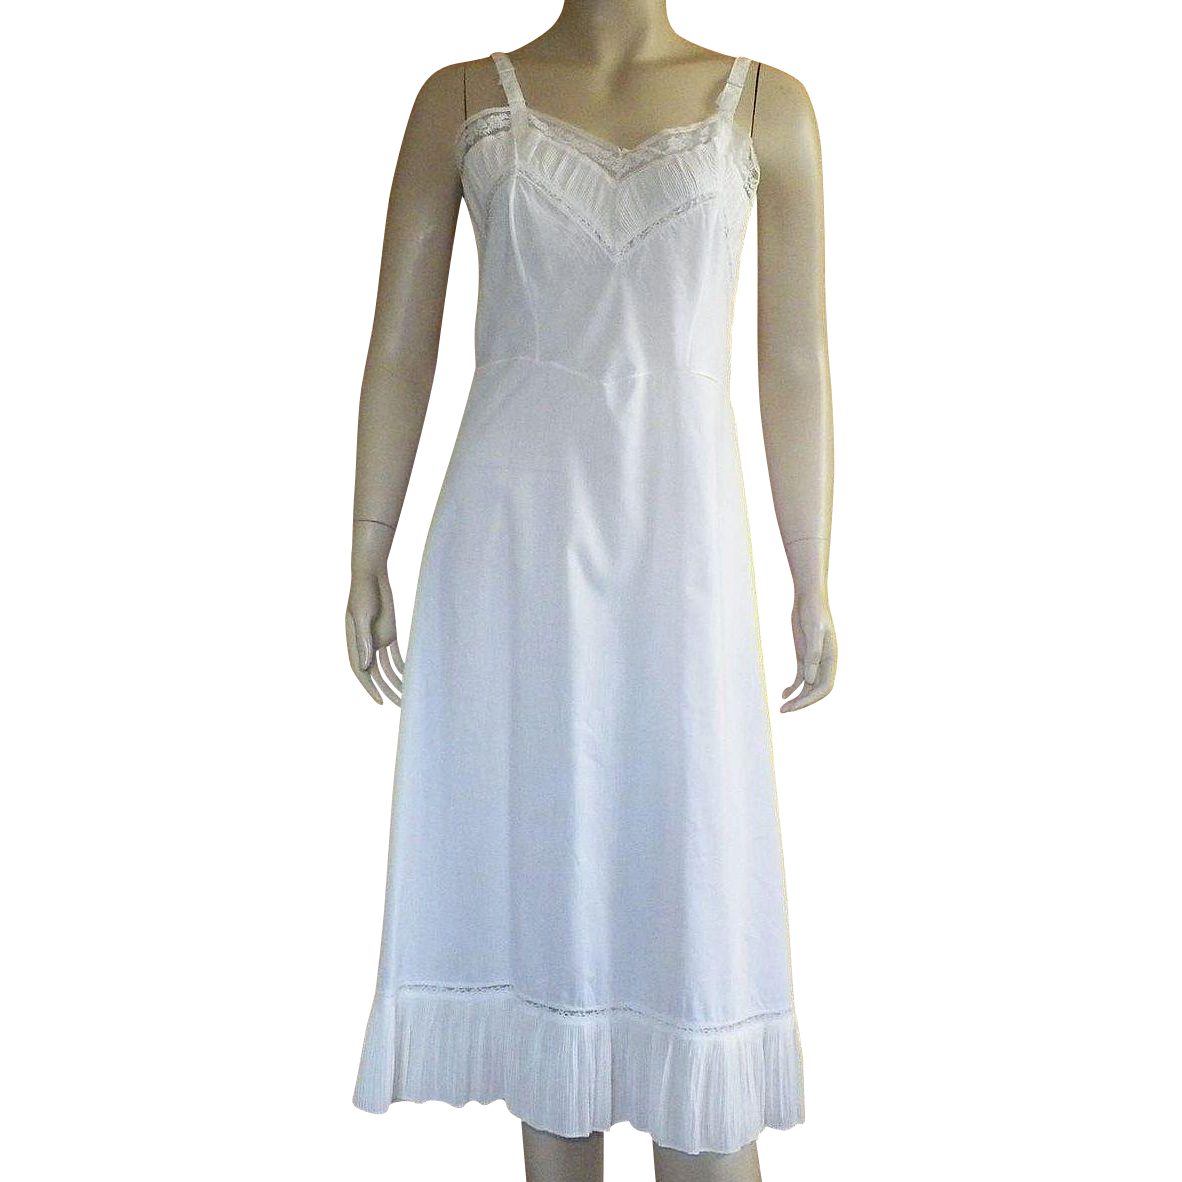 Vintage Cotton Blend White Full Slip